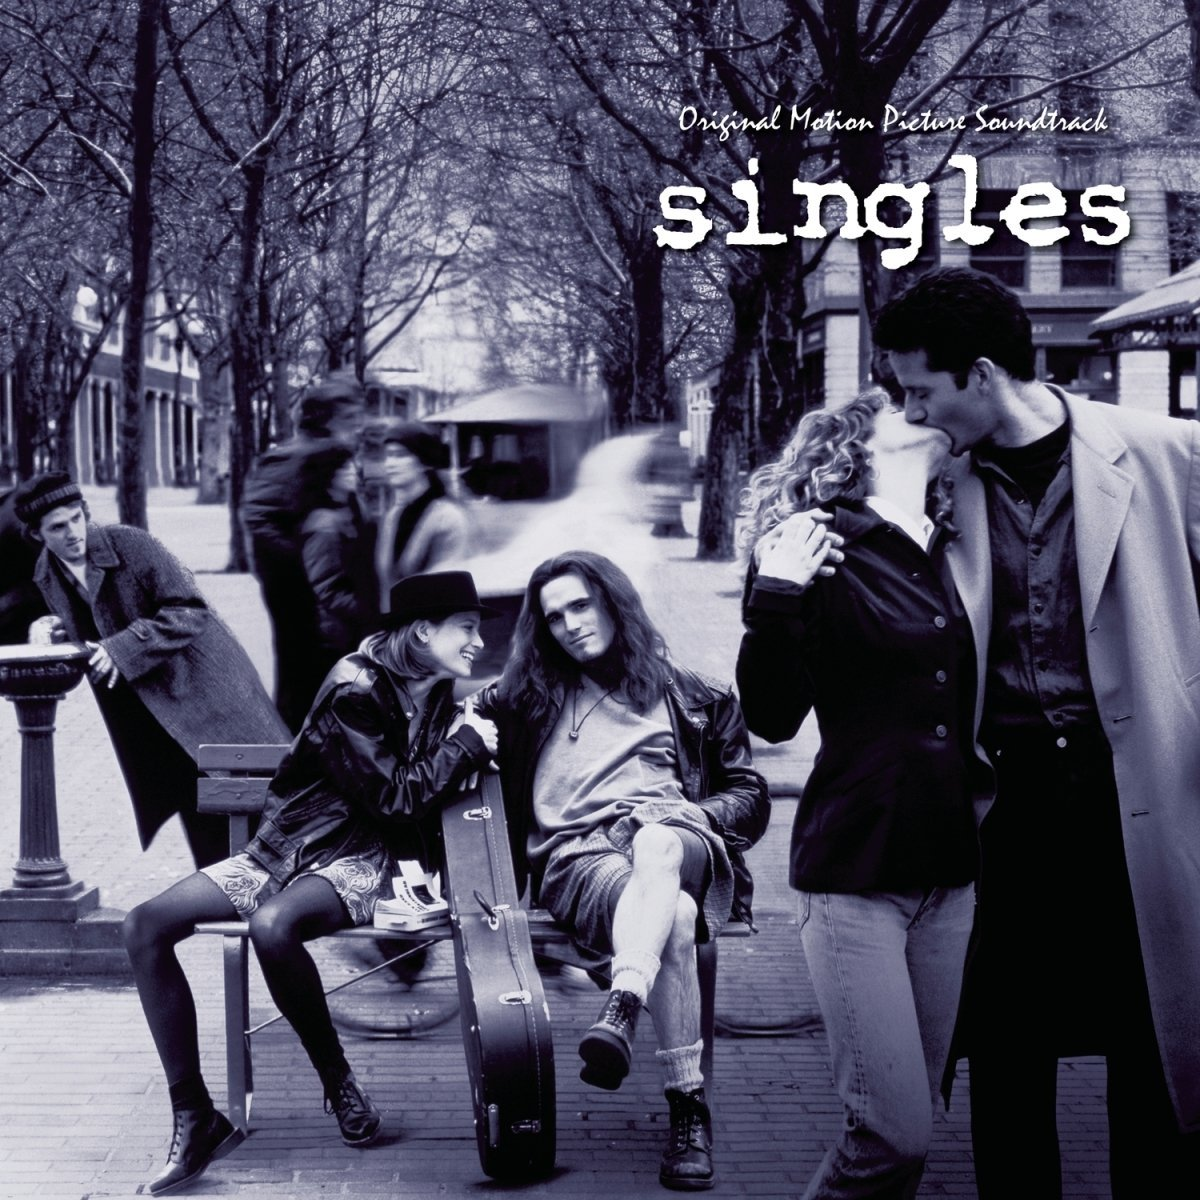 Various Artists: Singles (Original Motion Picture Soundtrack – Deluxe Edition) [Album Review]